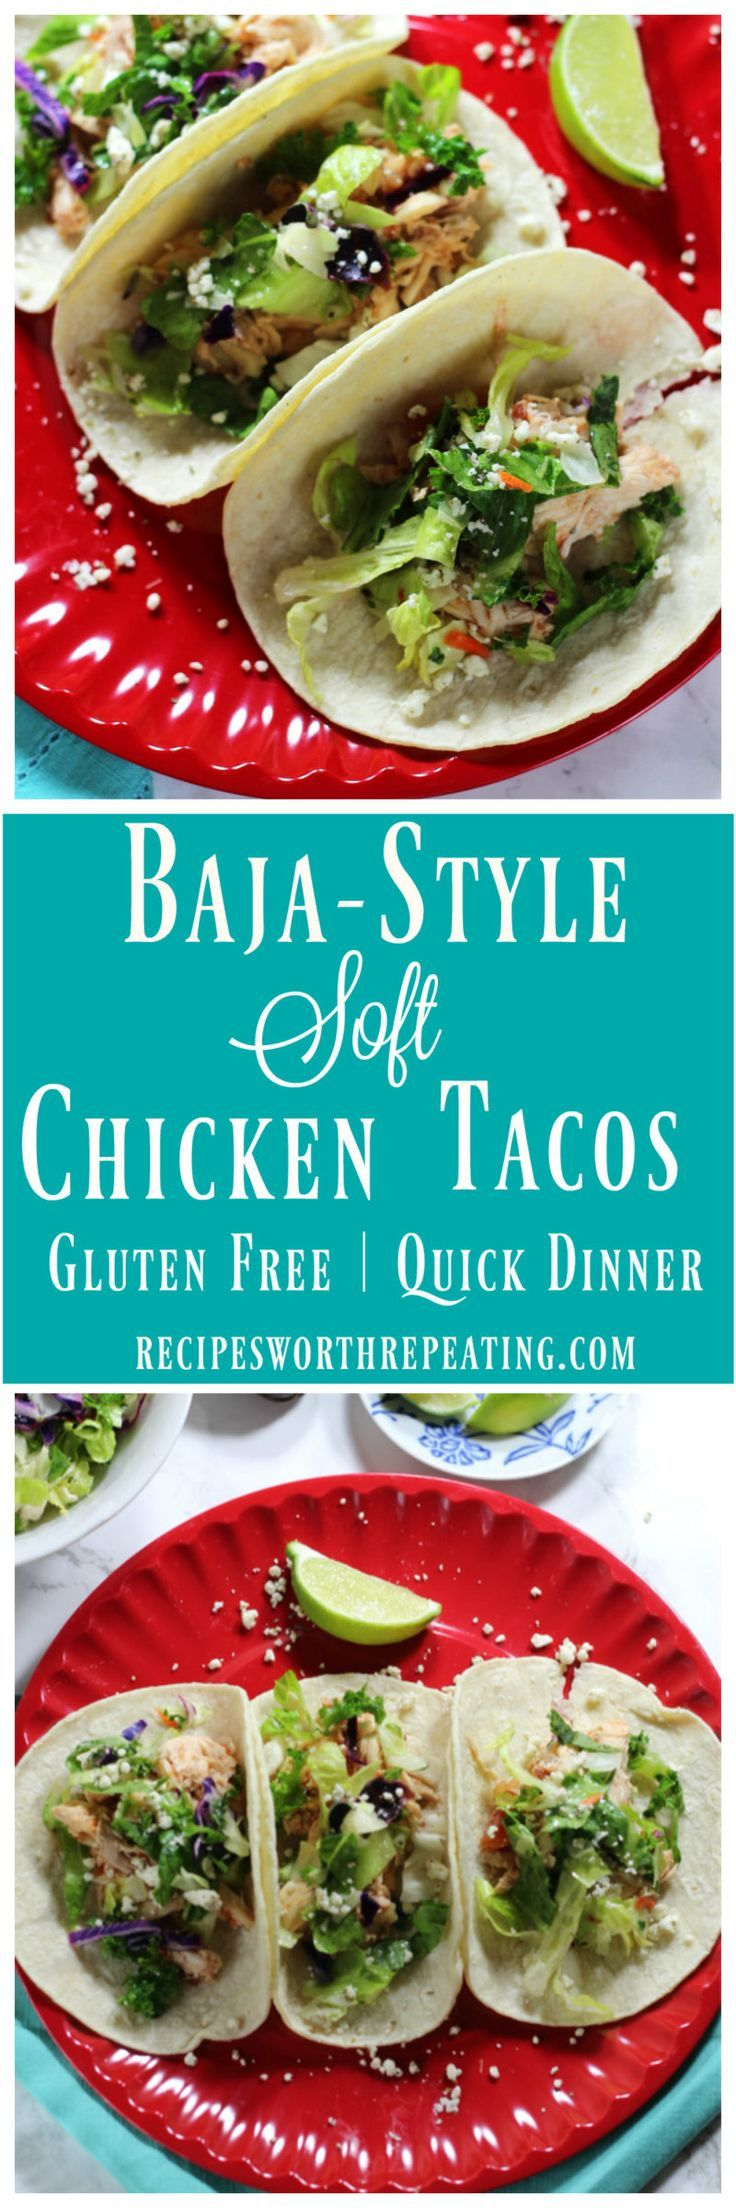 This one's a keeper! These Baja-Style Soft Chicken Tacos are a twist on the classic Baja fish tacos! Easy to make and perfect for that quick dinner during the week!